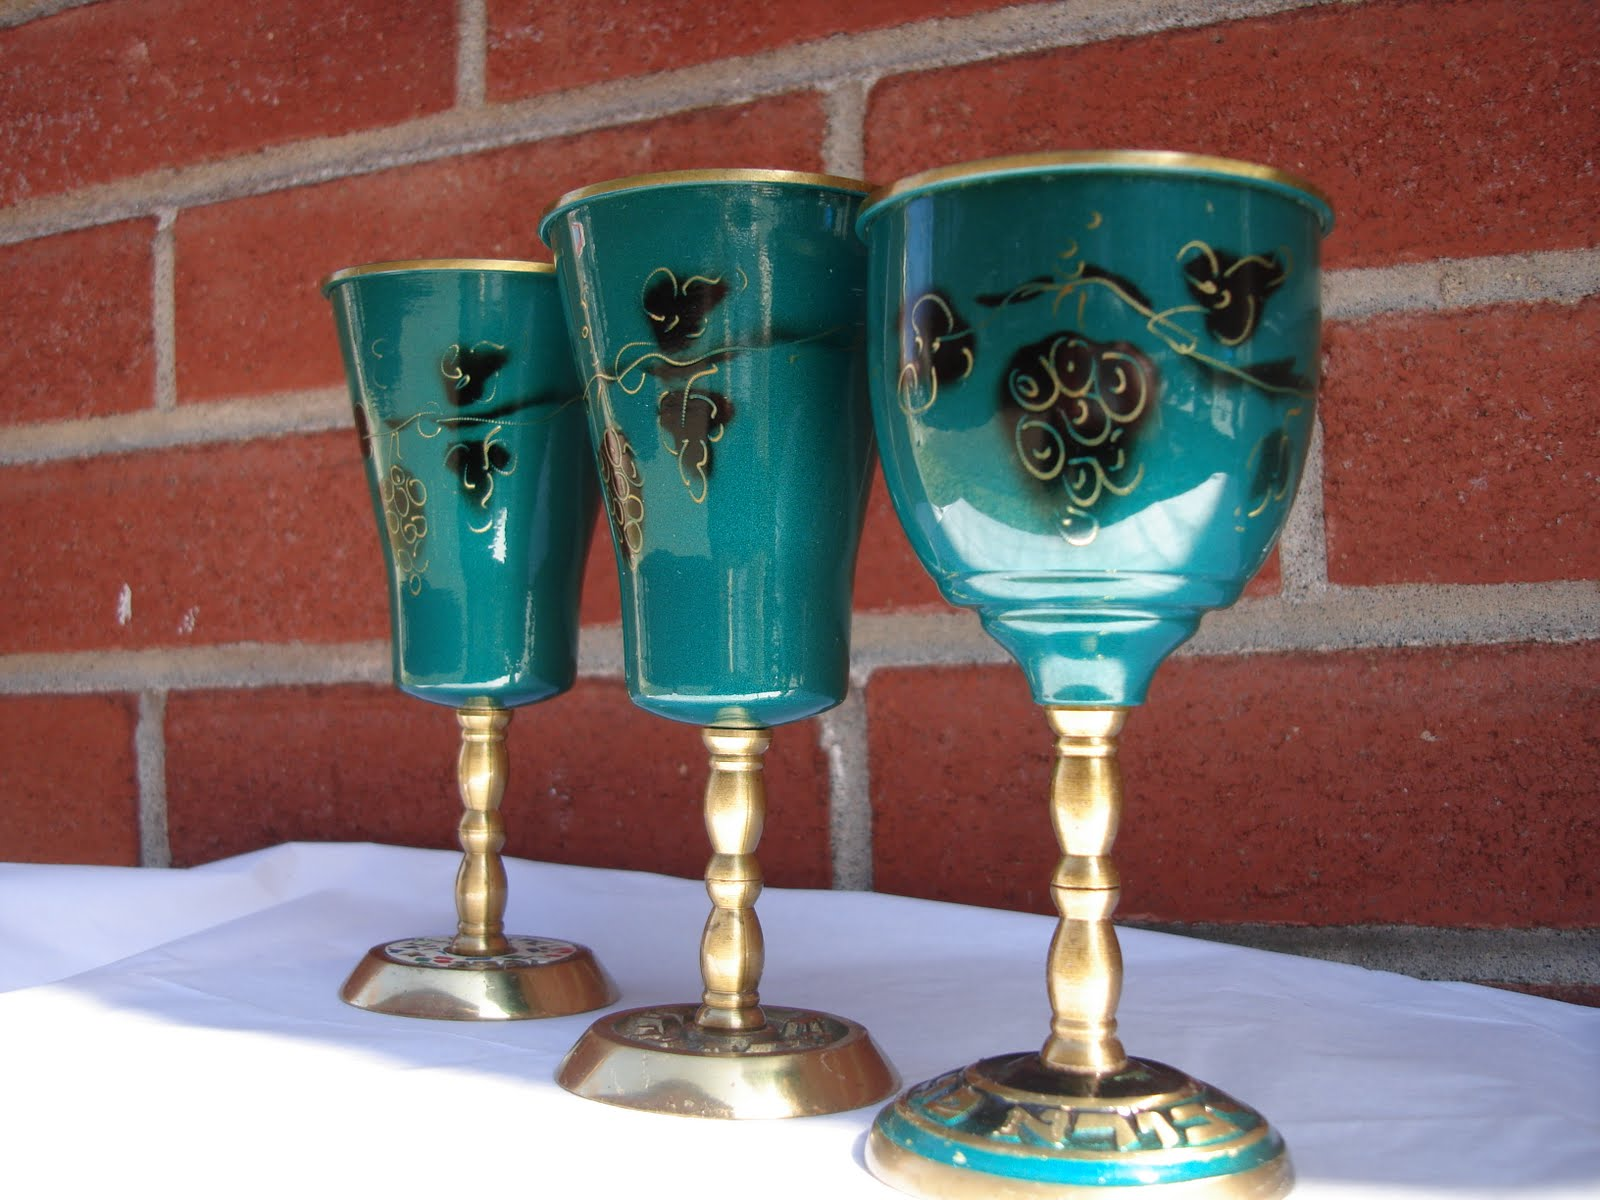 Vintage Treasures And More Antique Metal Wine Goblets From Israel